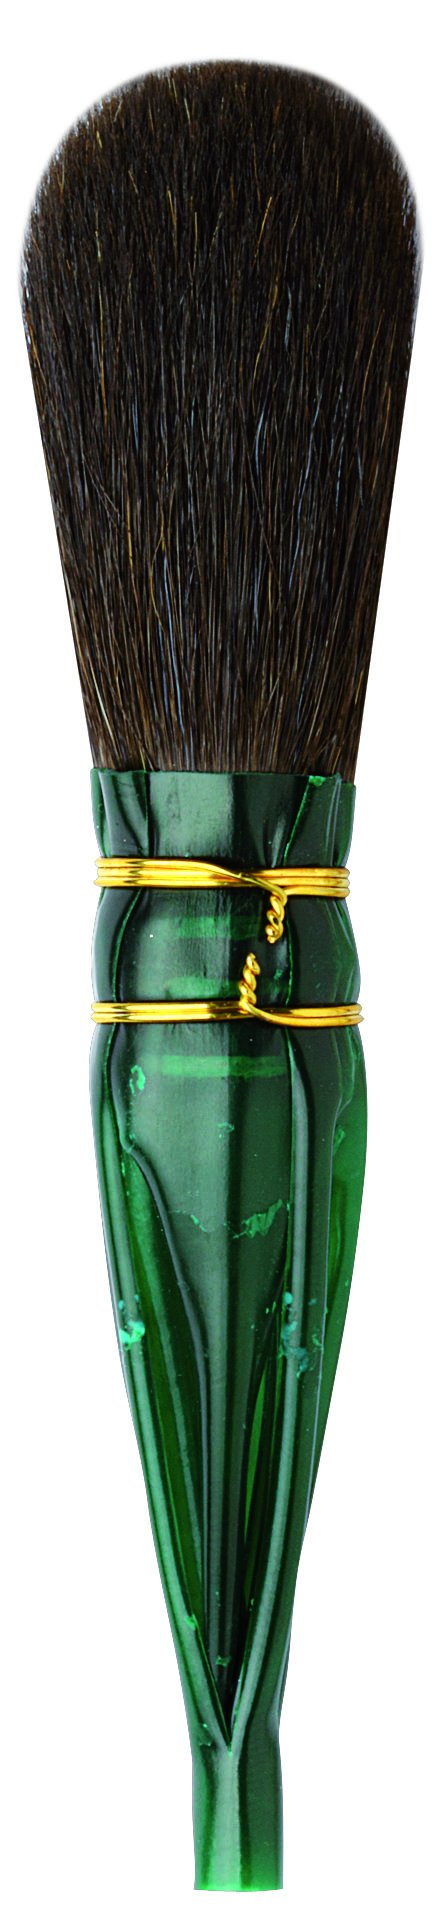 da Vinci Gilding Series 710 Double Quill Gilder Mop, Oval Blue Squirrel Hair, Size 15 (710ov-15) by da Vinci Brushes